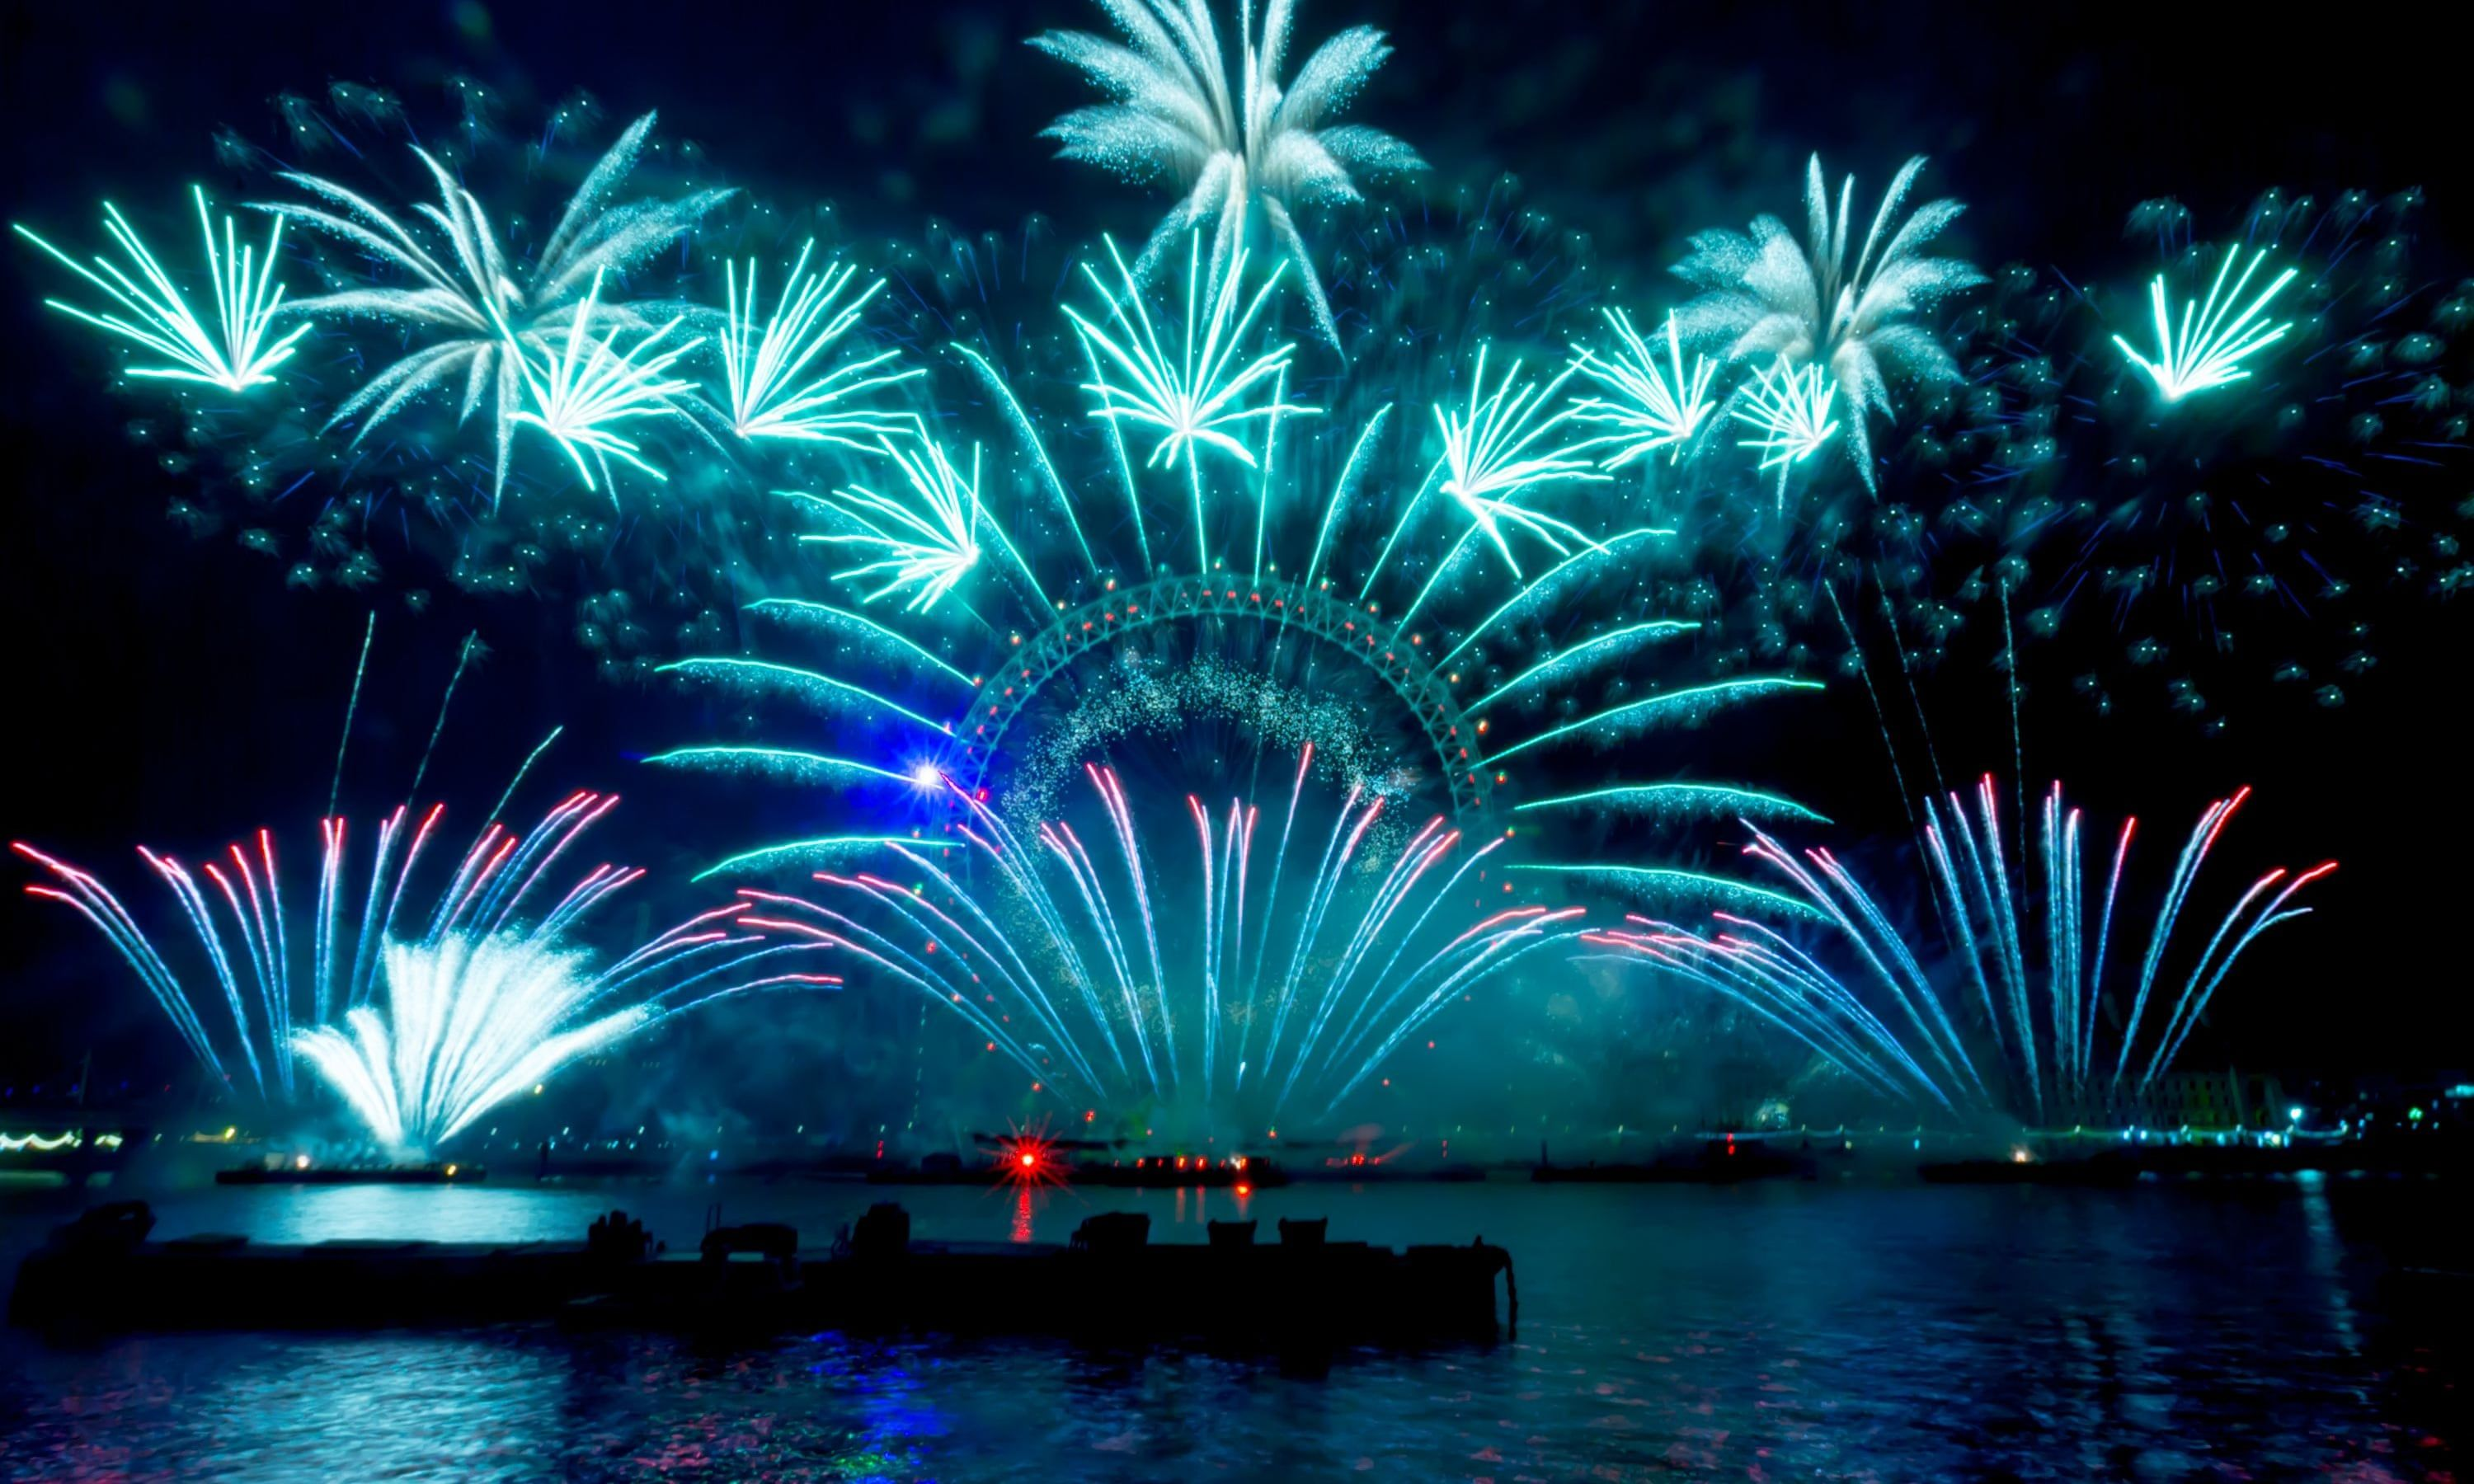 New Year's Eve celebrations and fireworks around the world